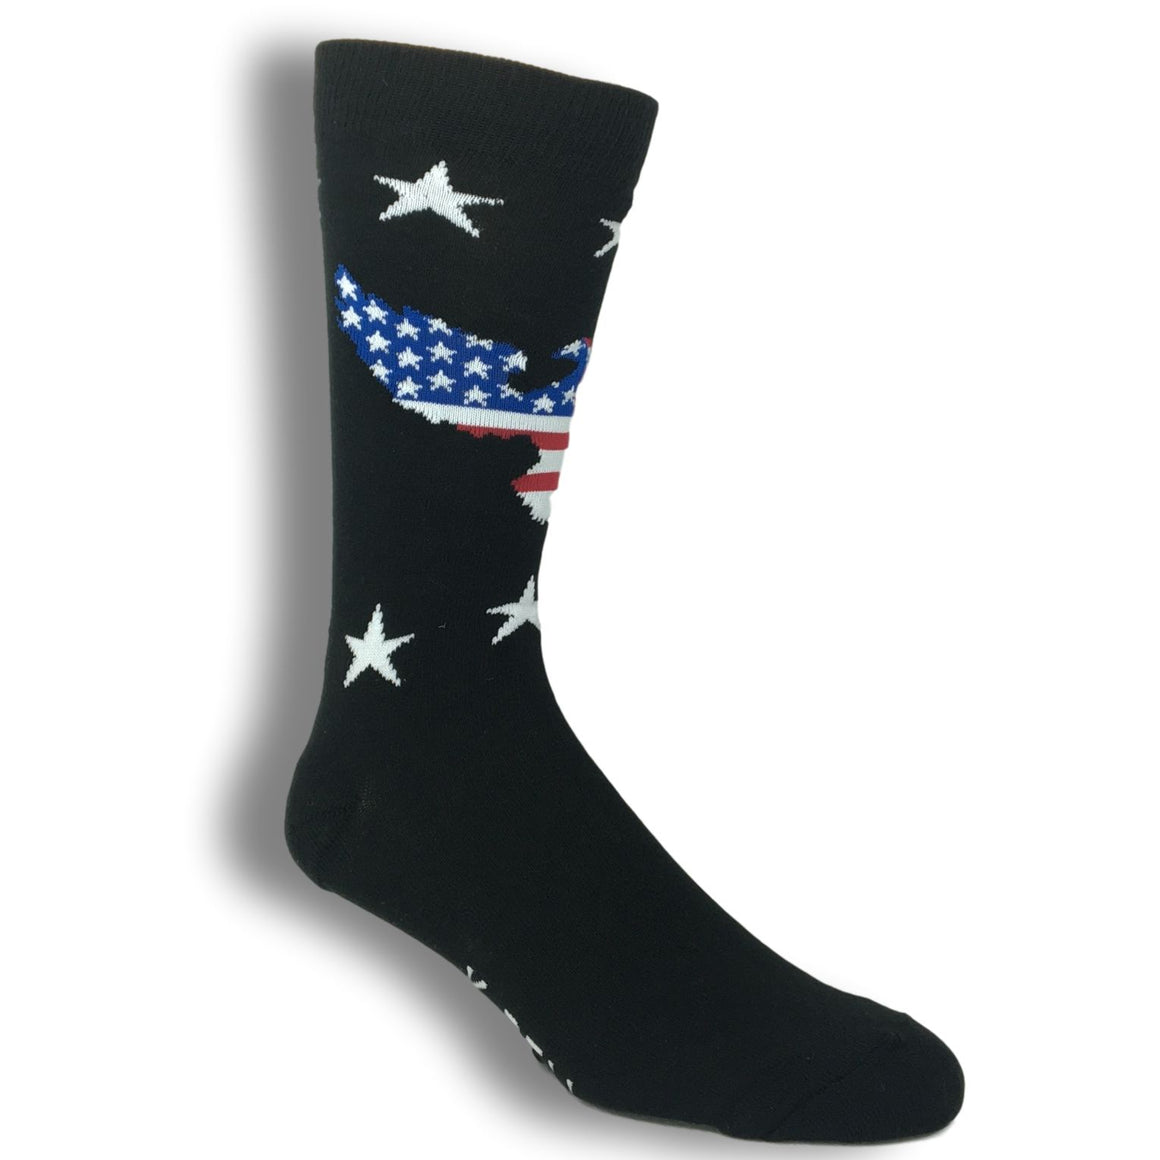 Patriotic Eagle Socks - Made In America by K.Bell - The Sock Spot